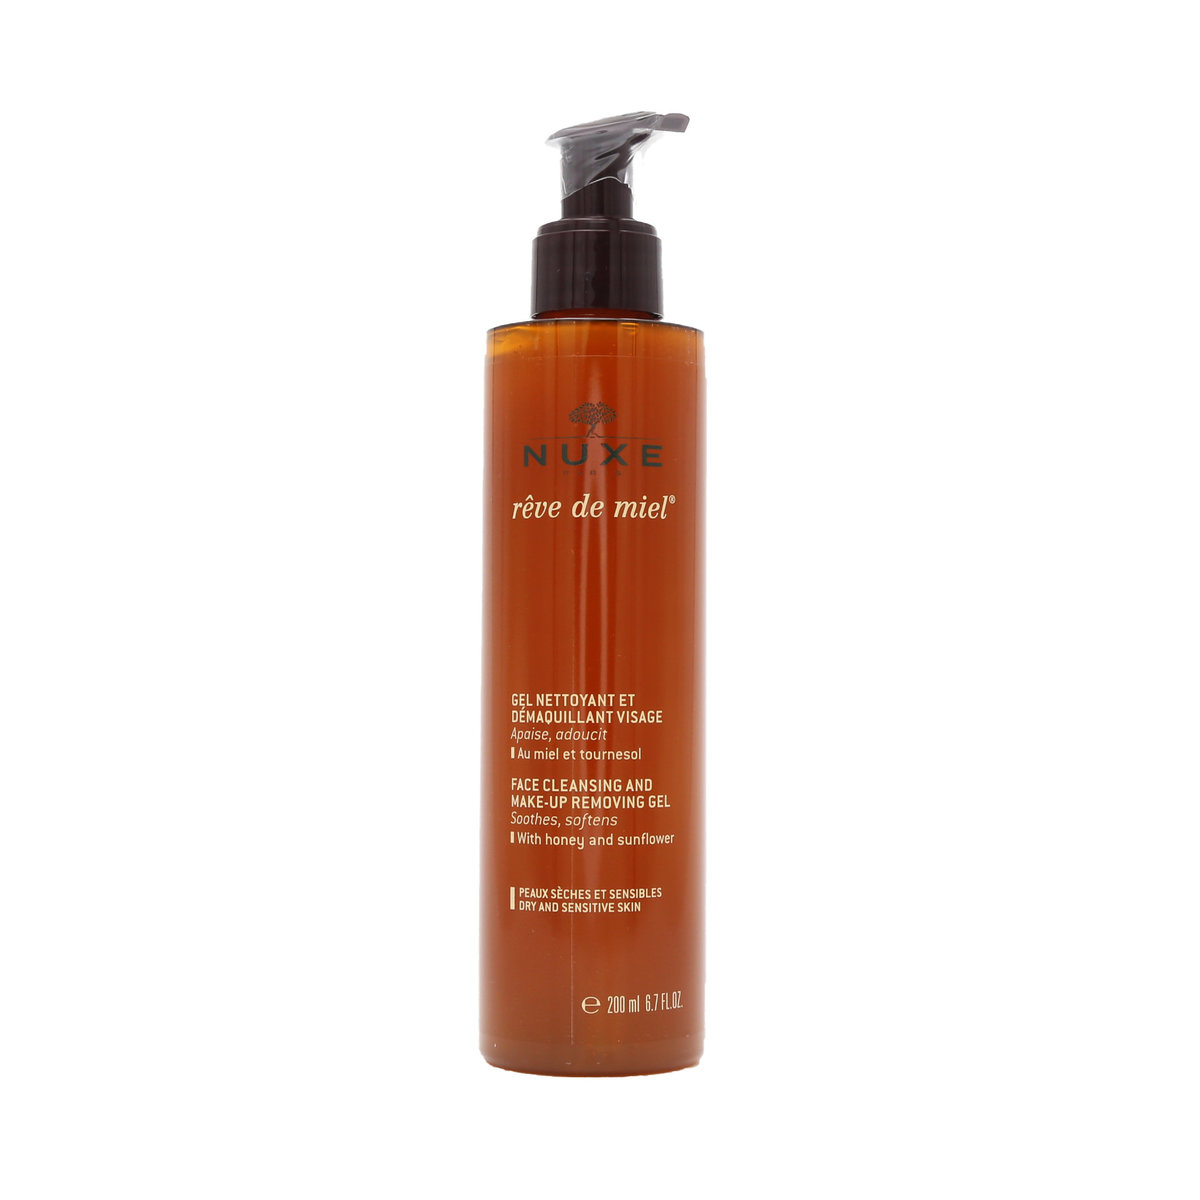 RDM Face Cleansing and Make-up Removing Gel 200ml (3264680004070)- [Parallel Import Product]